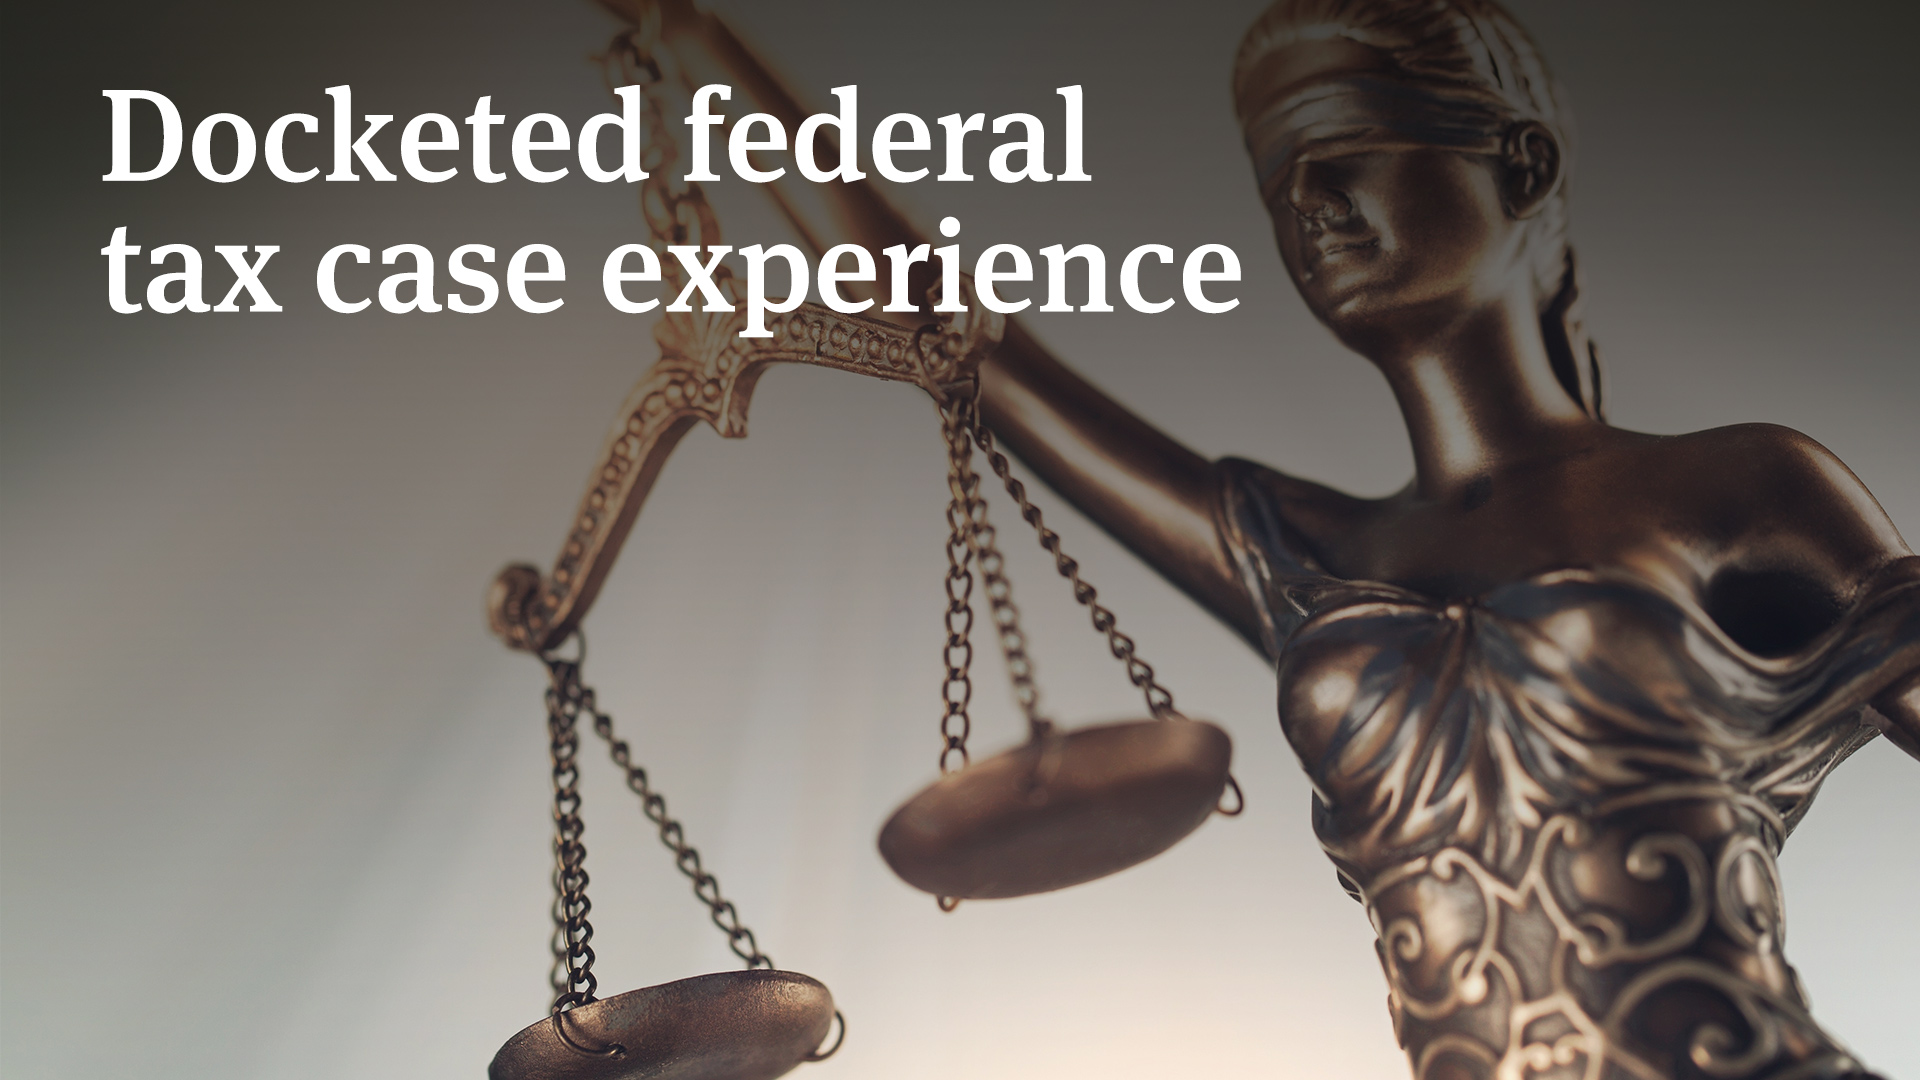 Docketed federal tax case experience